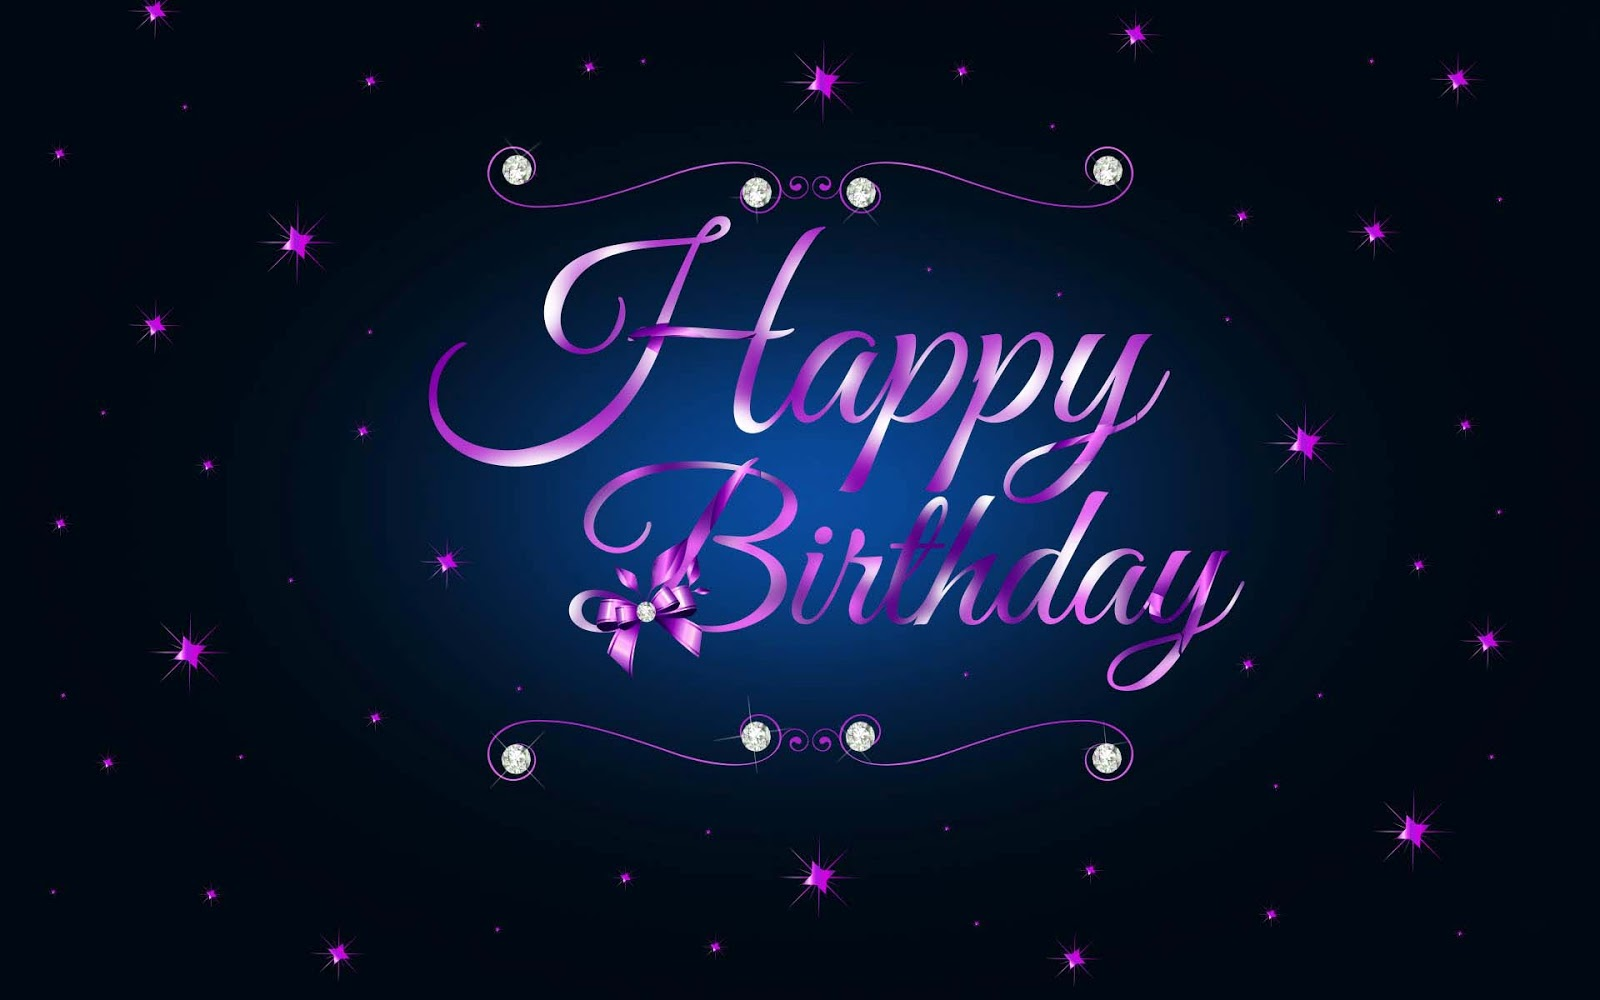 Happy birthday hd wallpaper latestwallpaper99 - Happy birthday card wallpaper ...